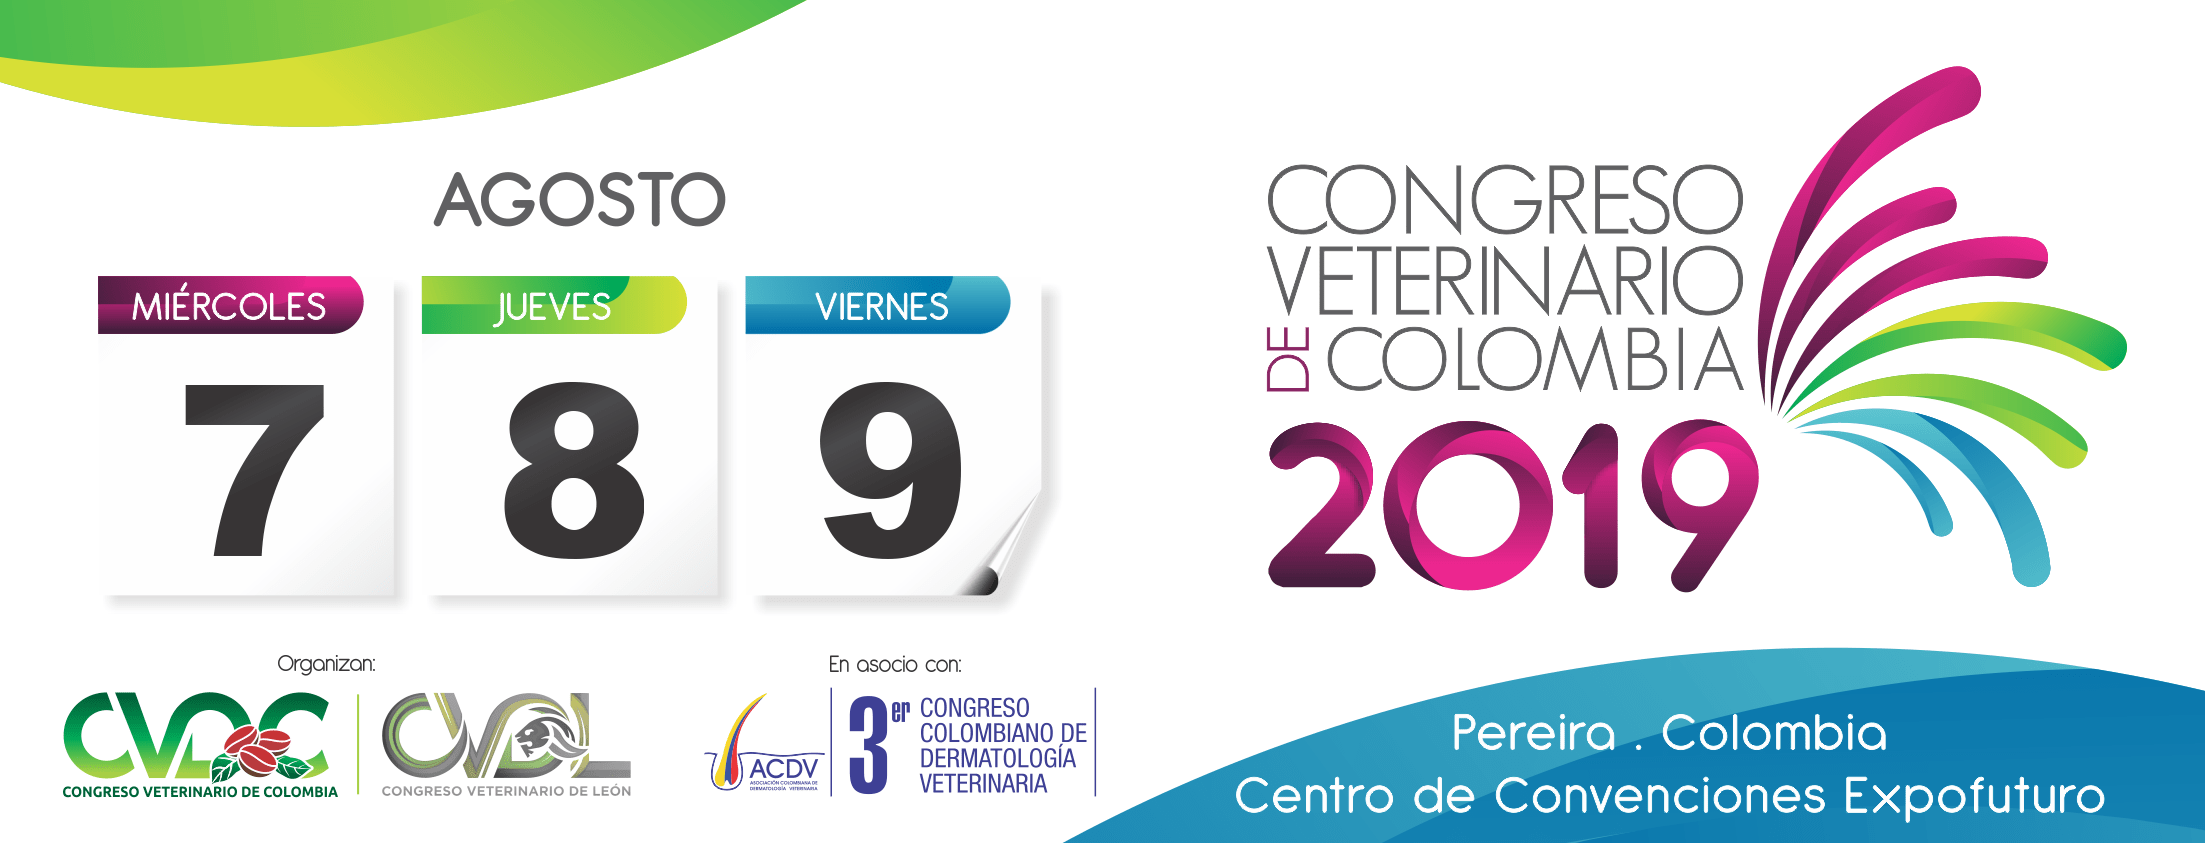 Congreso Veterinario de Colombia (CVDC)